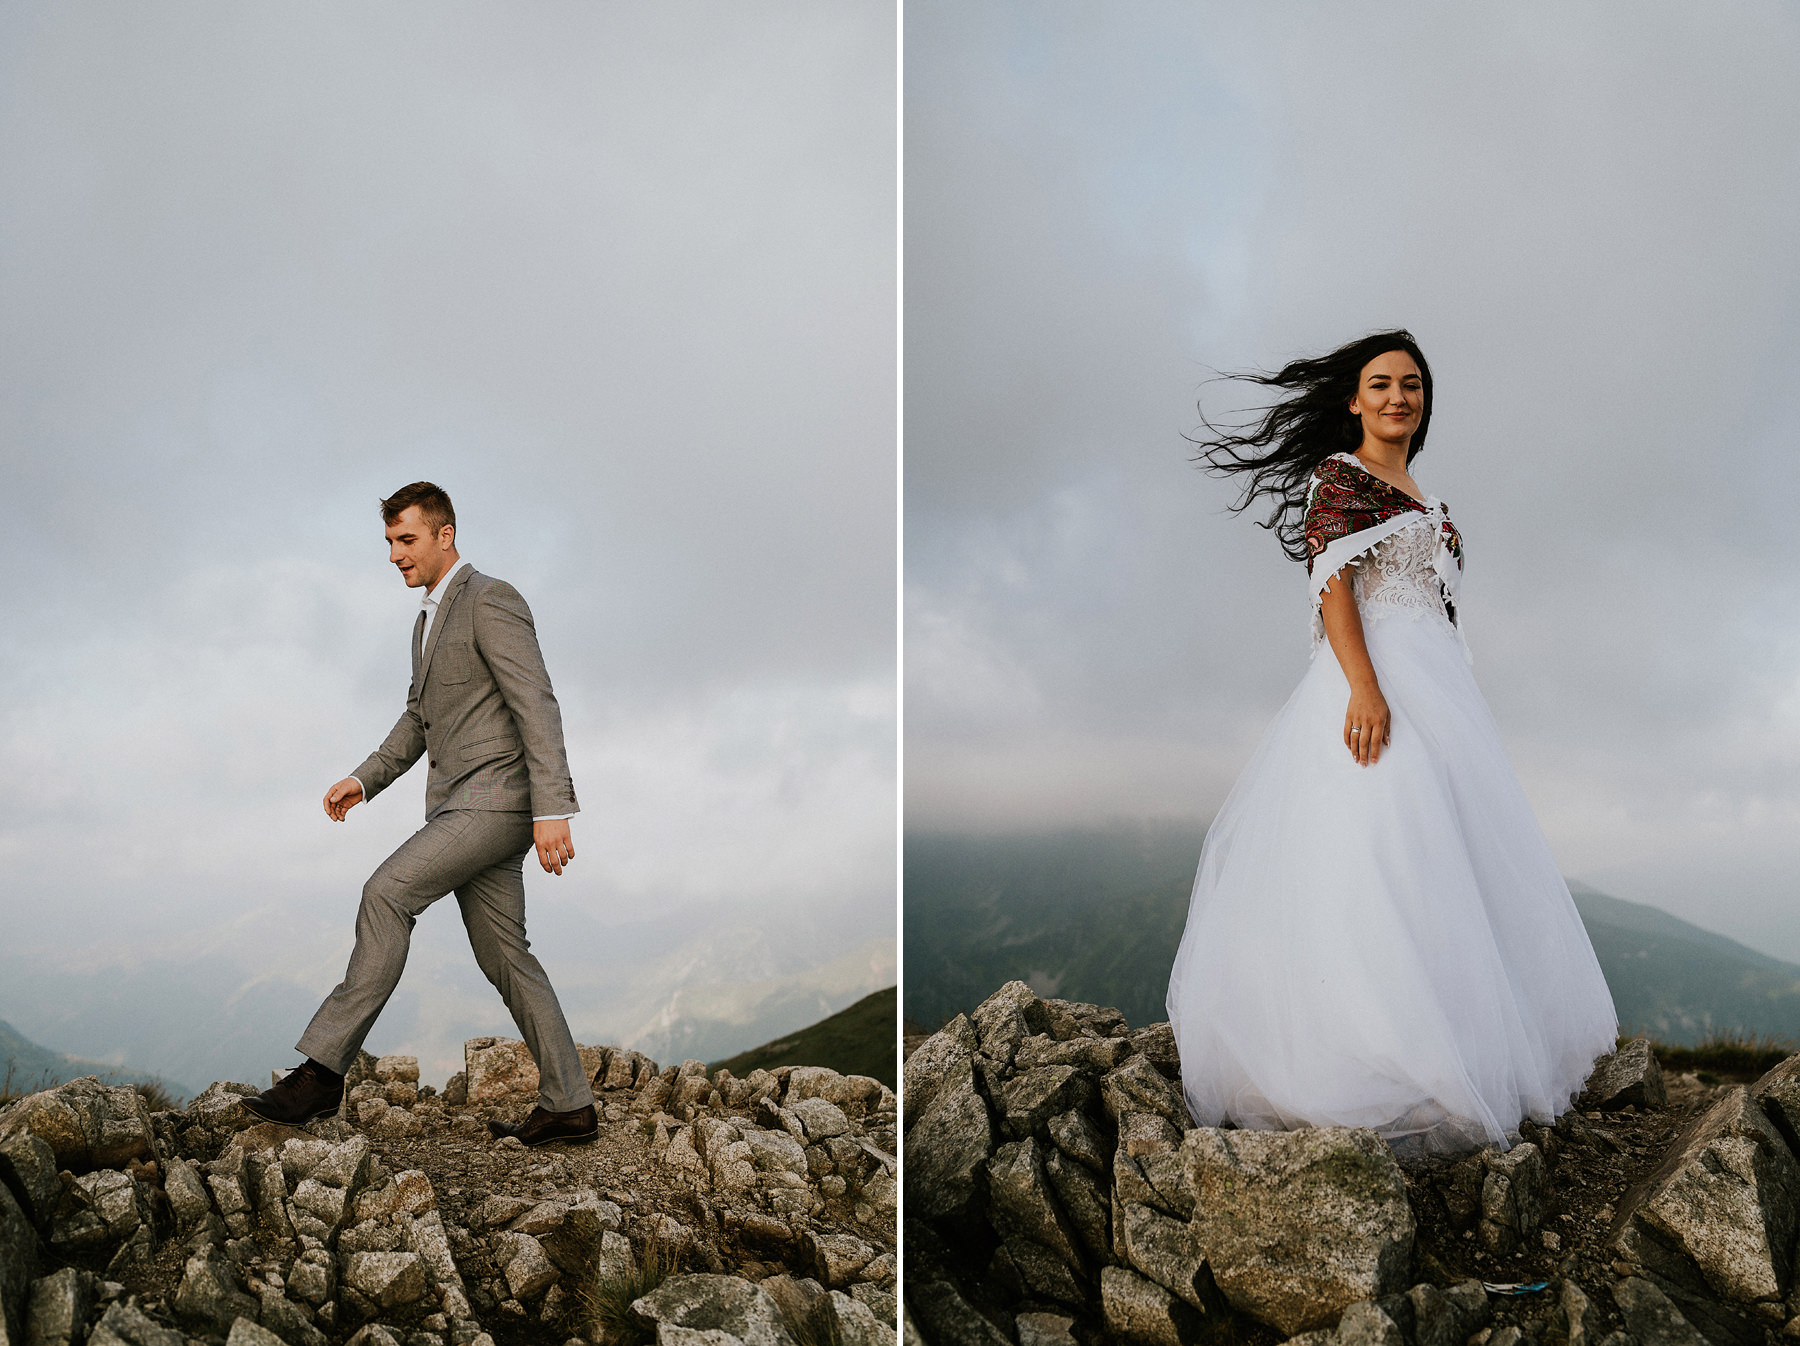 Kasprowy Wierch wedding session